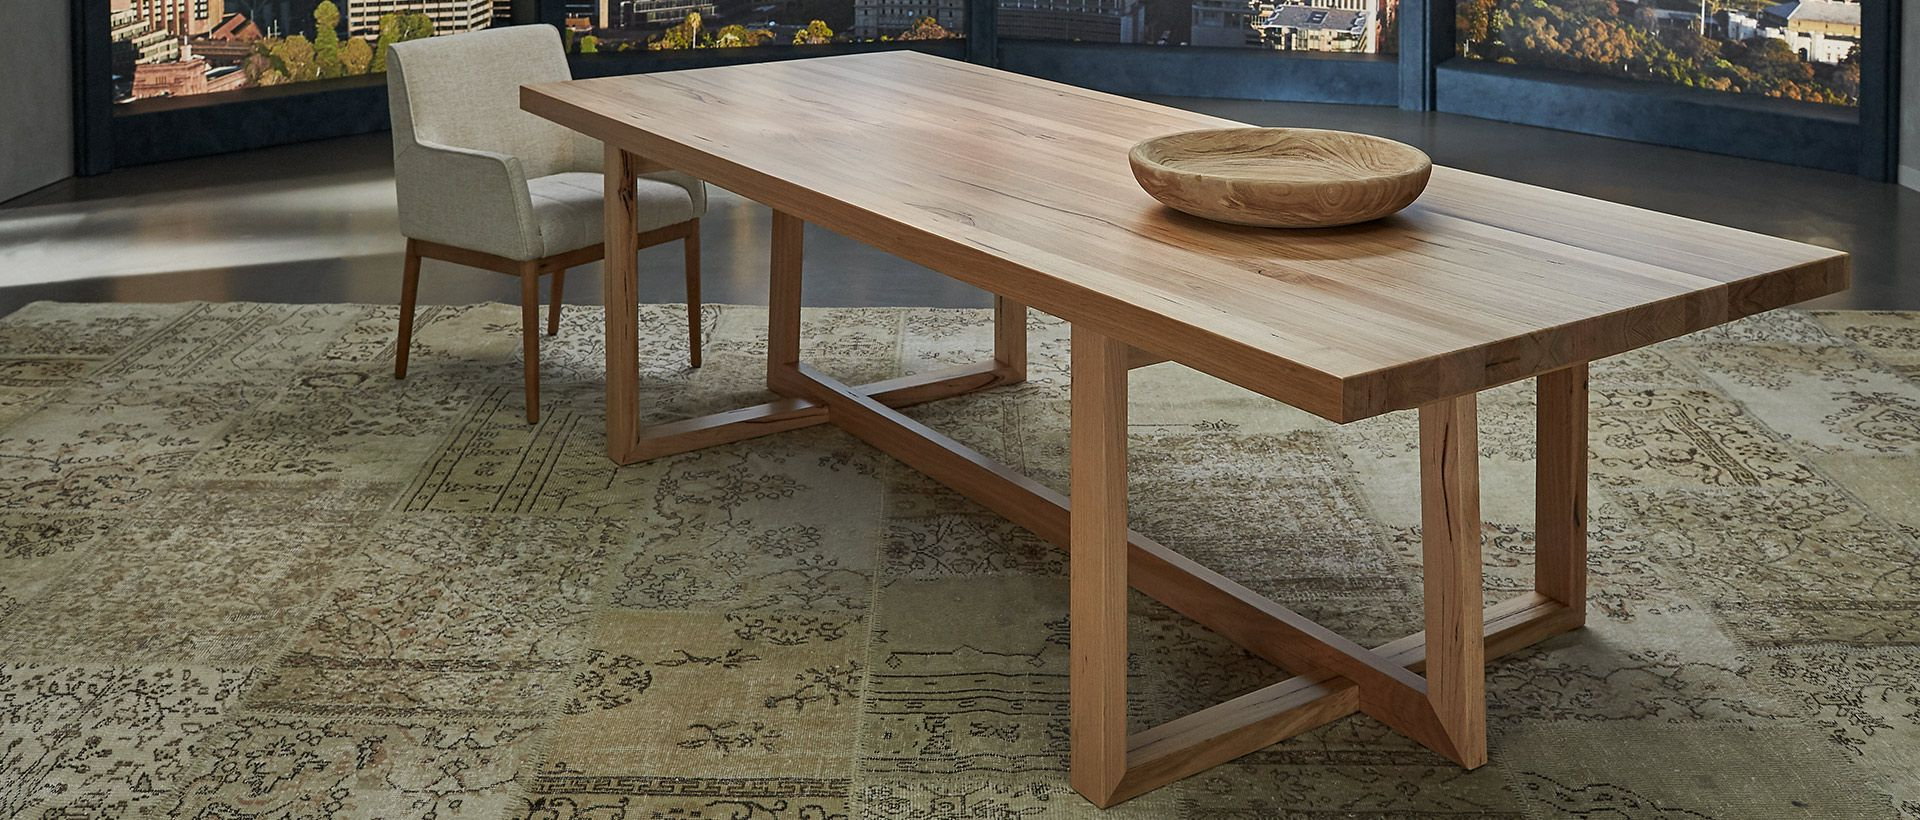 Nick Scali Within Favorite 4 Seater Round Wooden Dining Tables With Chrome Legs (Gallery 17 of 30)